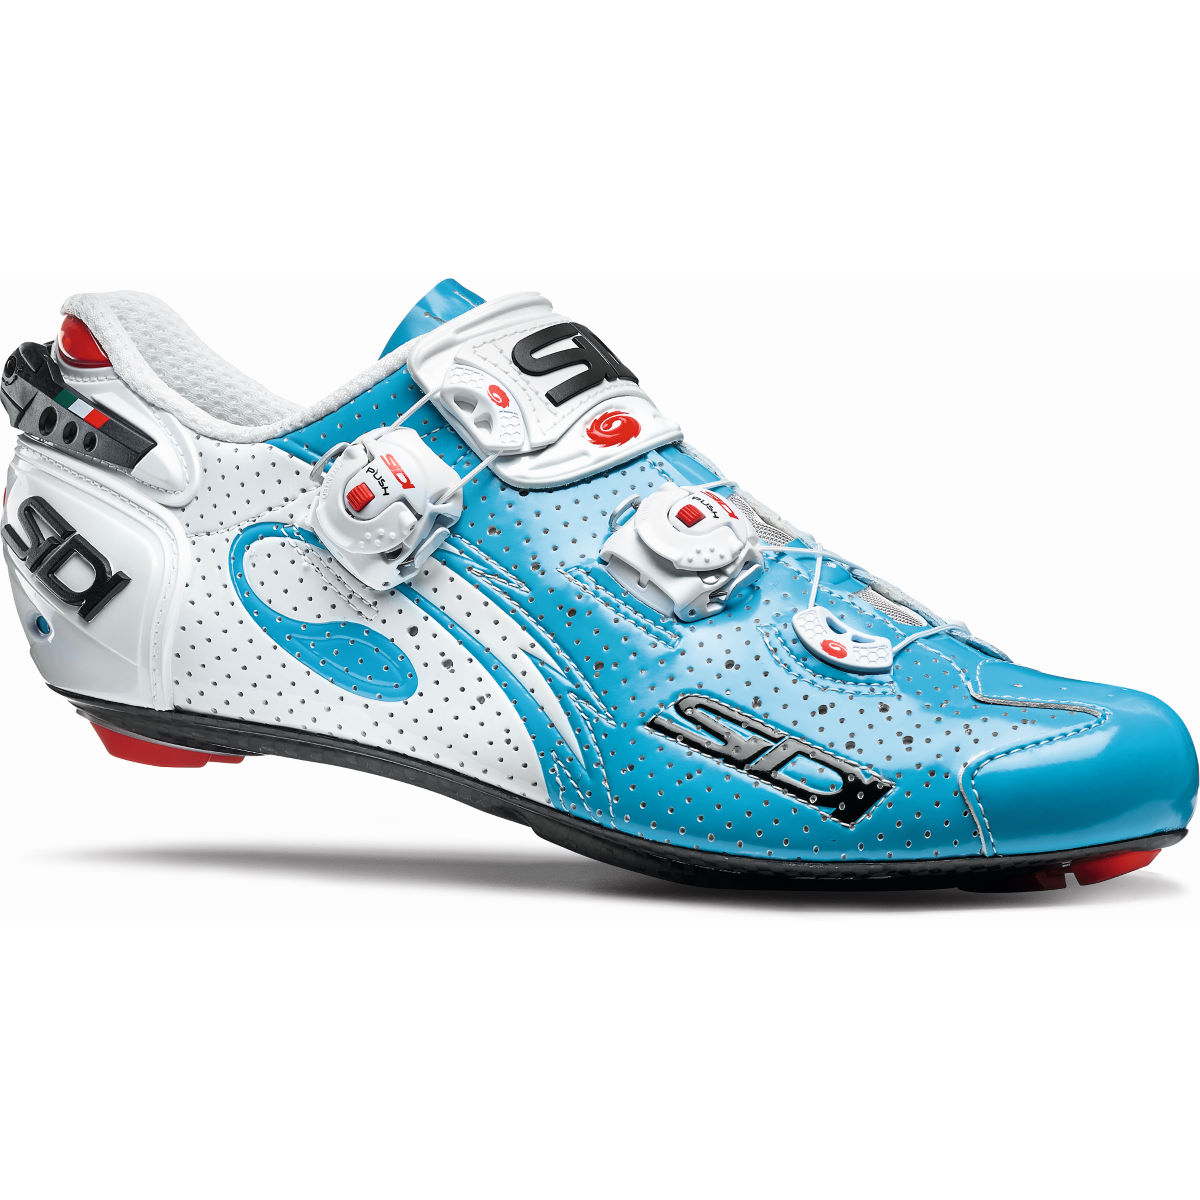 Sidi Carbon Air Vernice - 40.5 Blue/White | Road Shoes